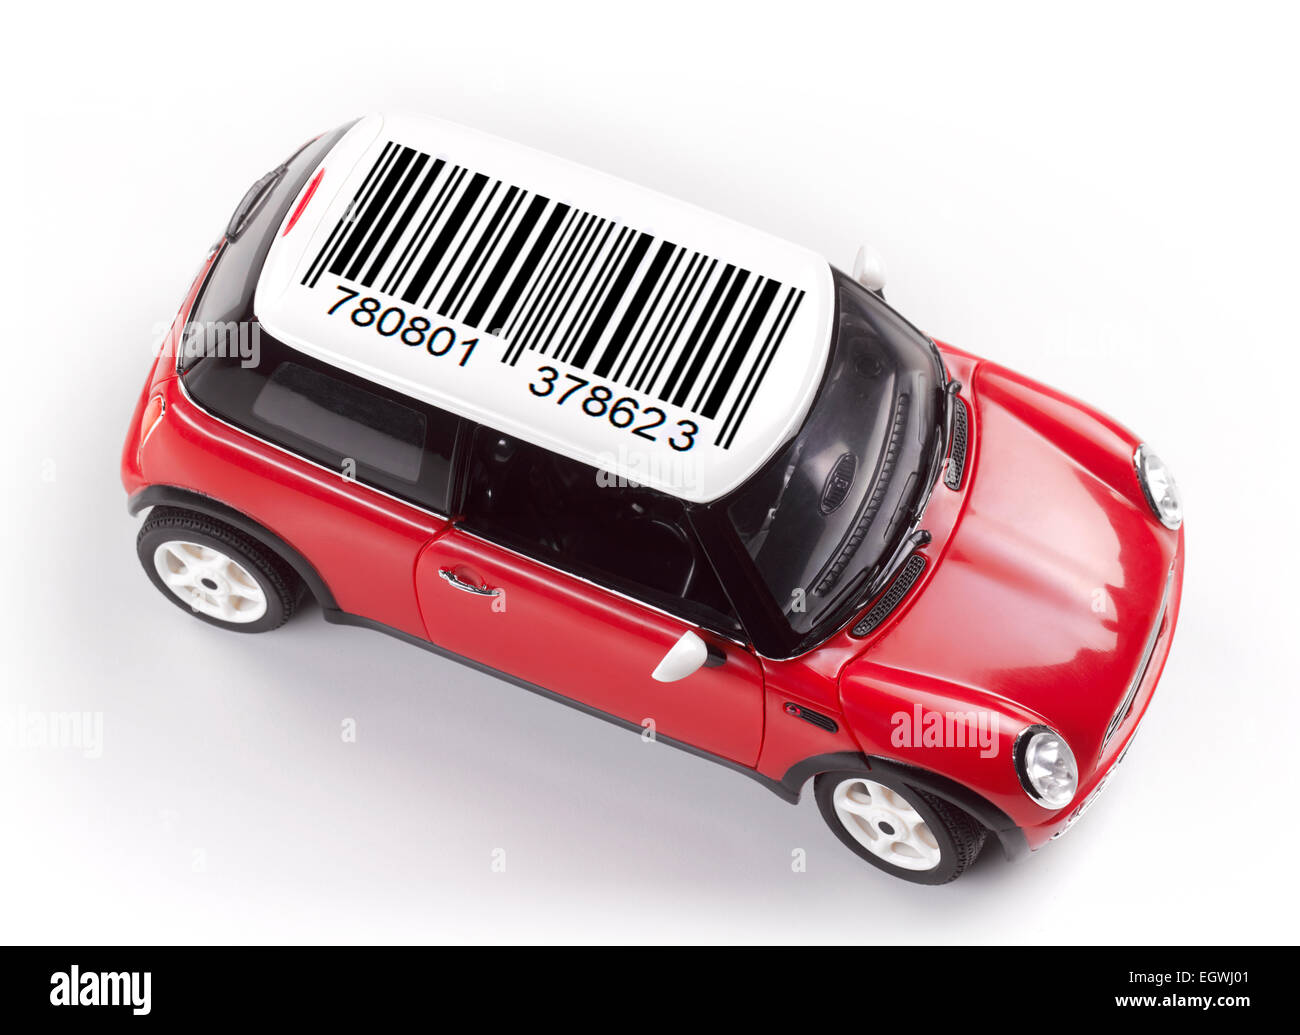 the cost of buying a car, cost of motoring, red toy , car shot from above on white - Stock Image